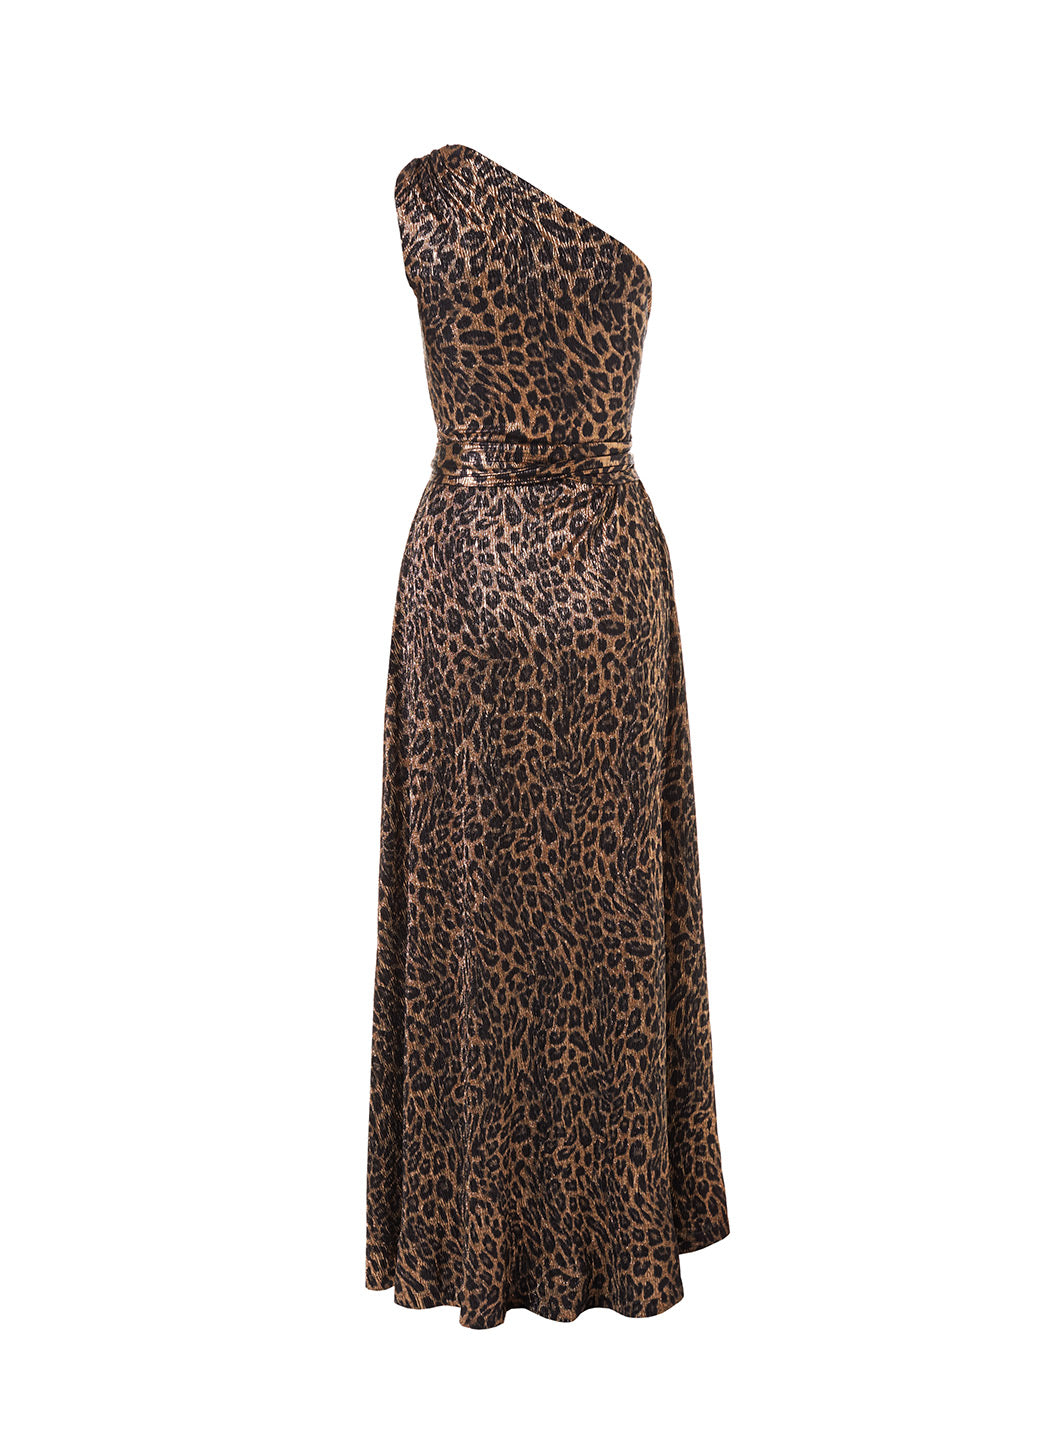 Look 2 One Shoulder Draped Maxi Dress Leopard